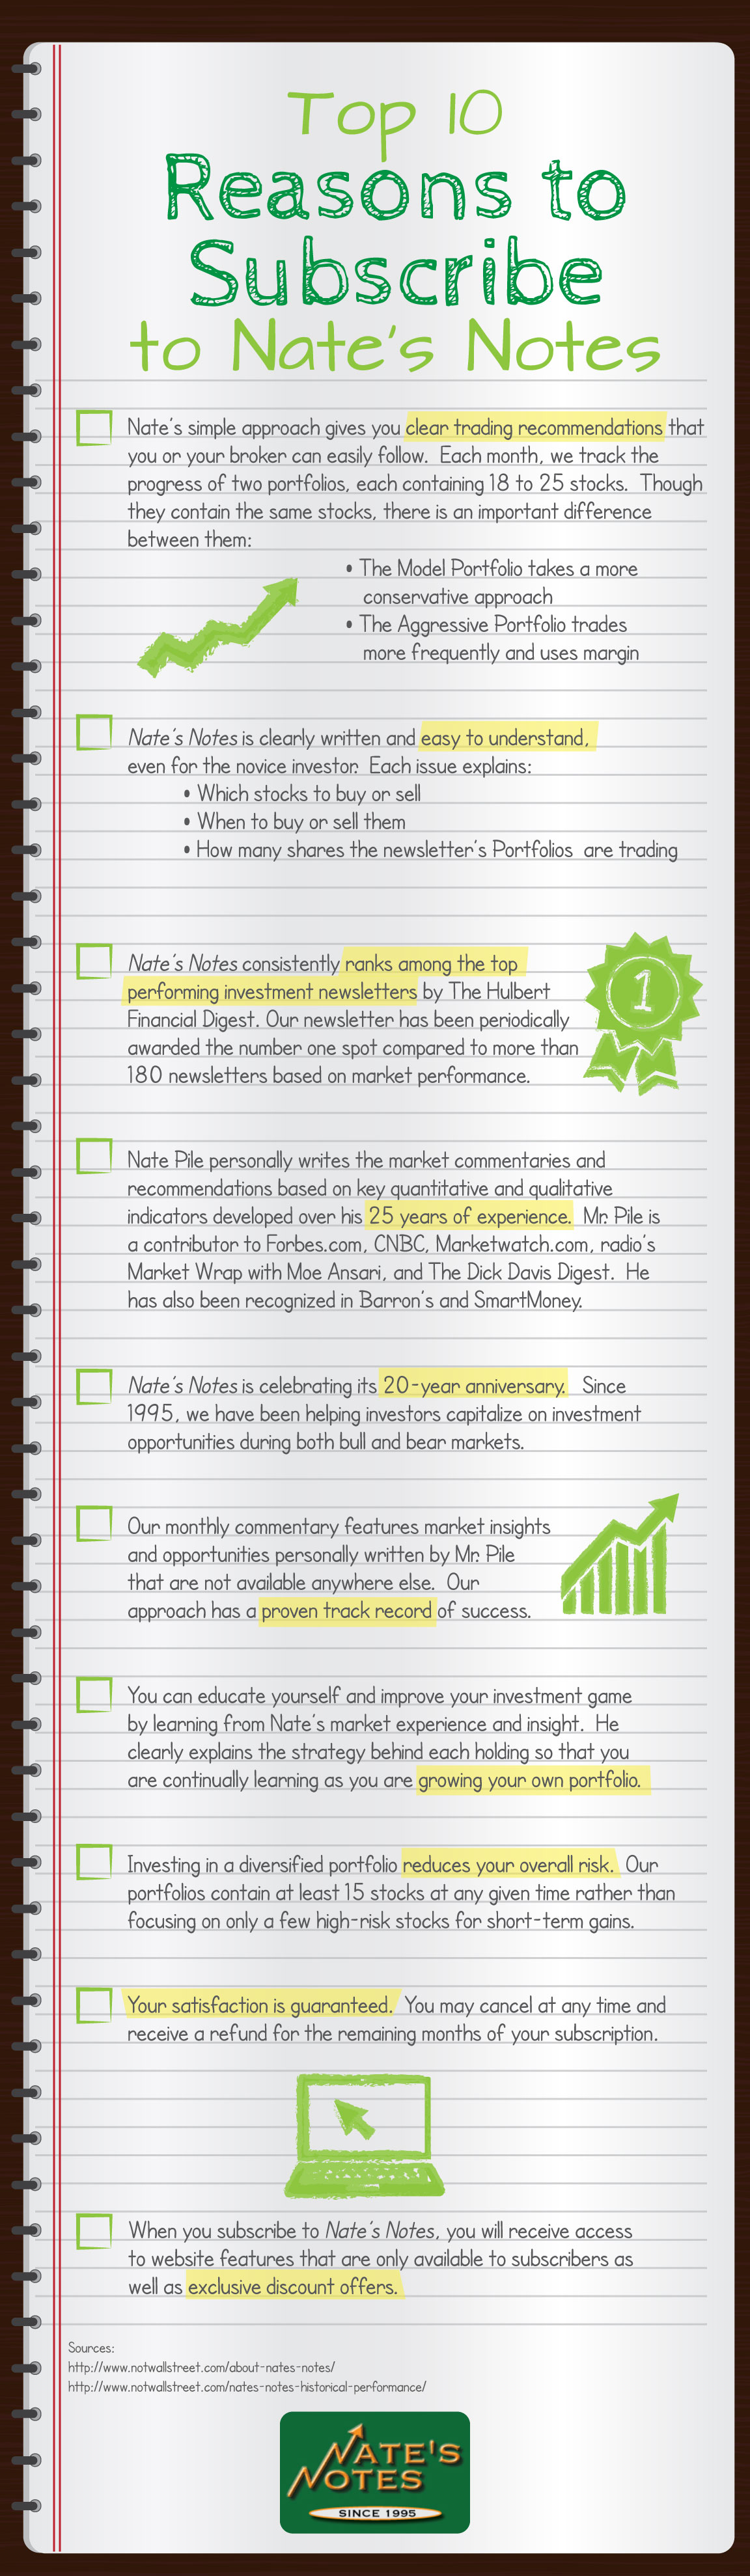 infographic_nates_notes_Apr2015_lrg